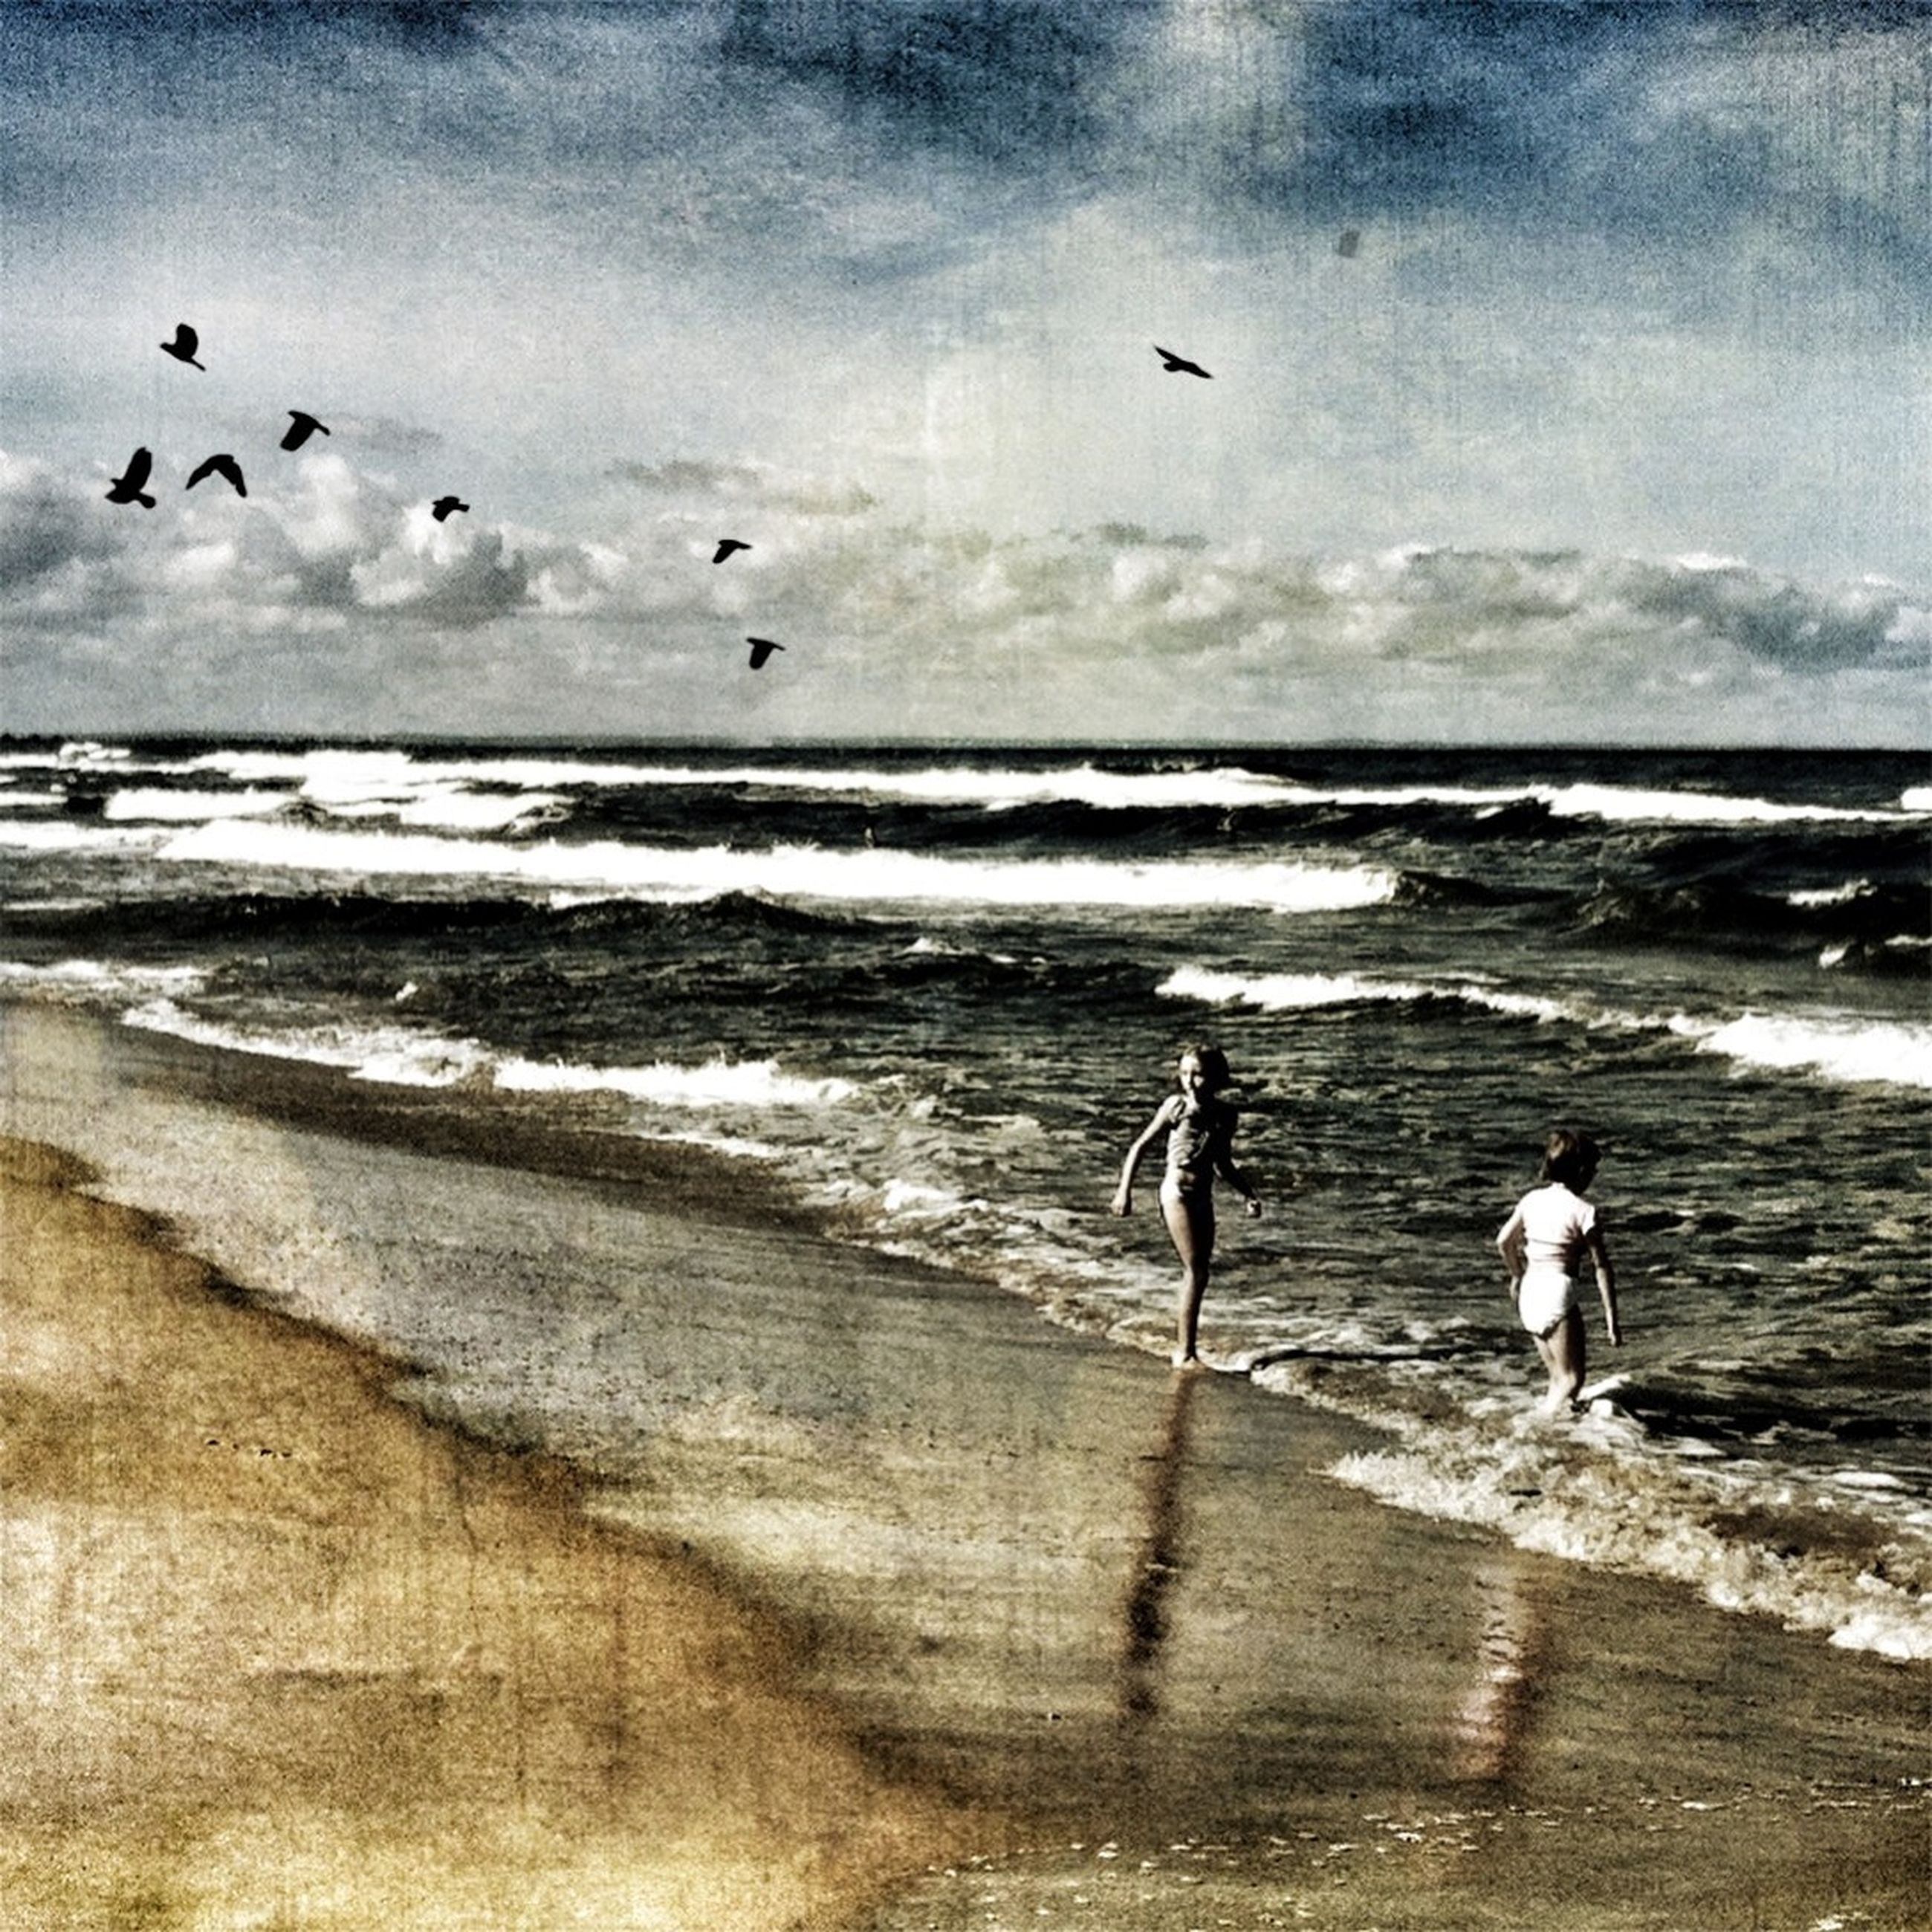 sea, beach, water, horizon over water, bird, shore, sky, animal themes, sand, wave, lifestyles, leisure activity, full length, flying, walking, animals in the wild, seagull, nature, men